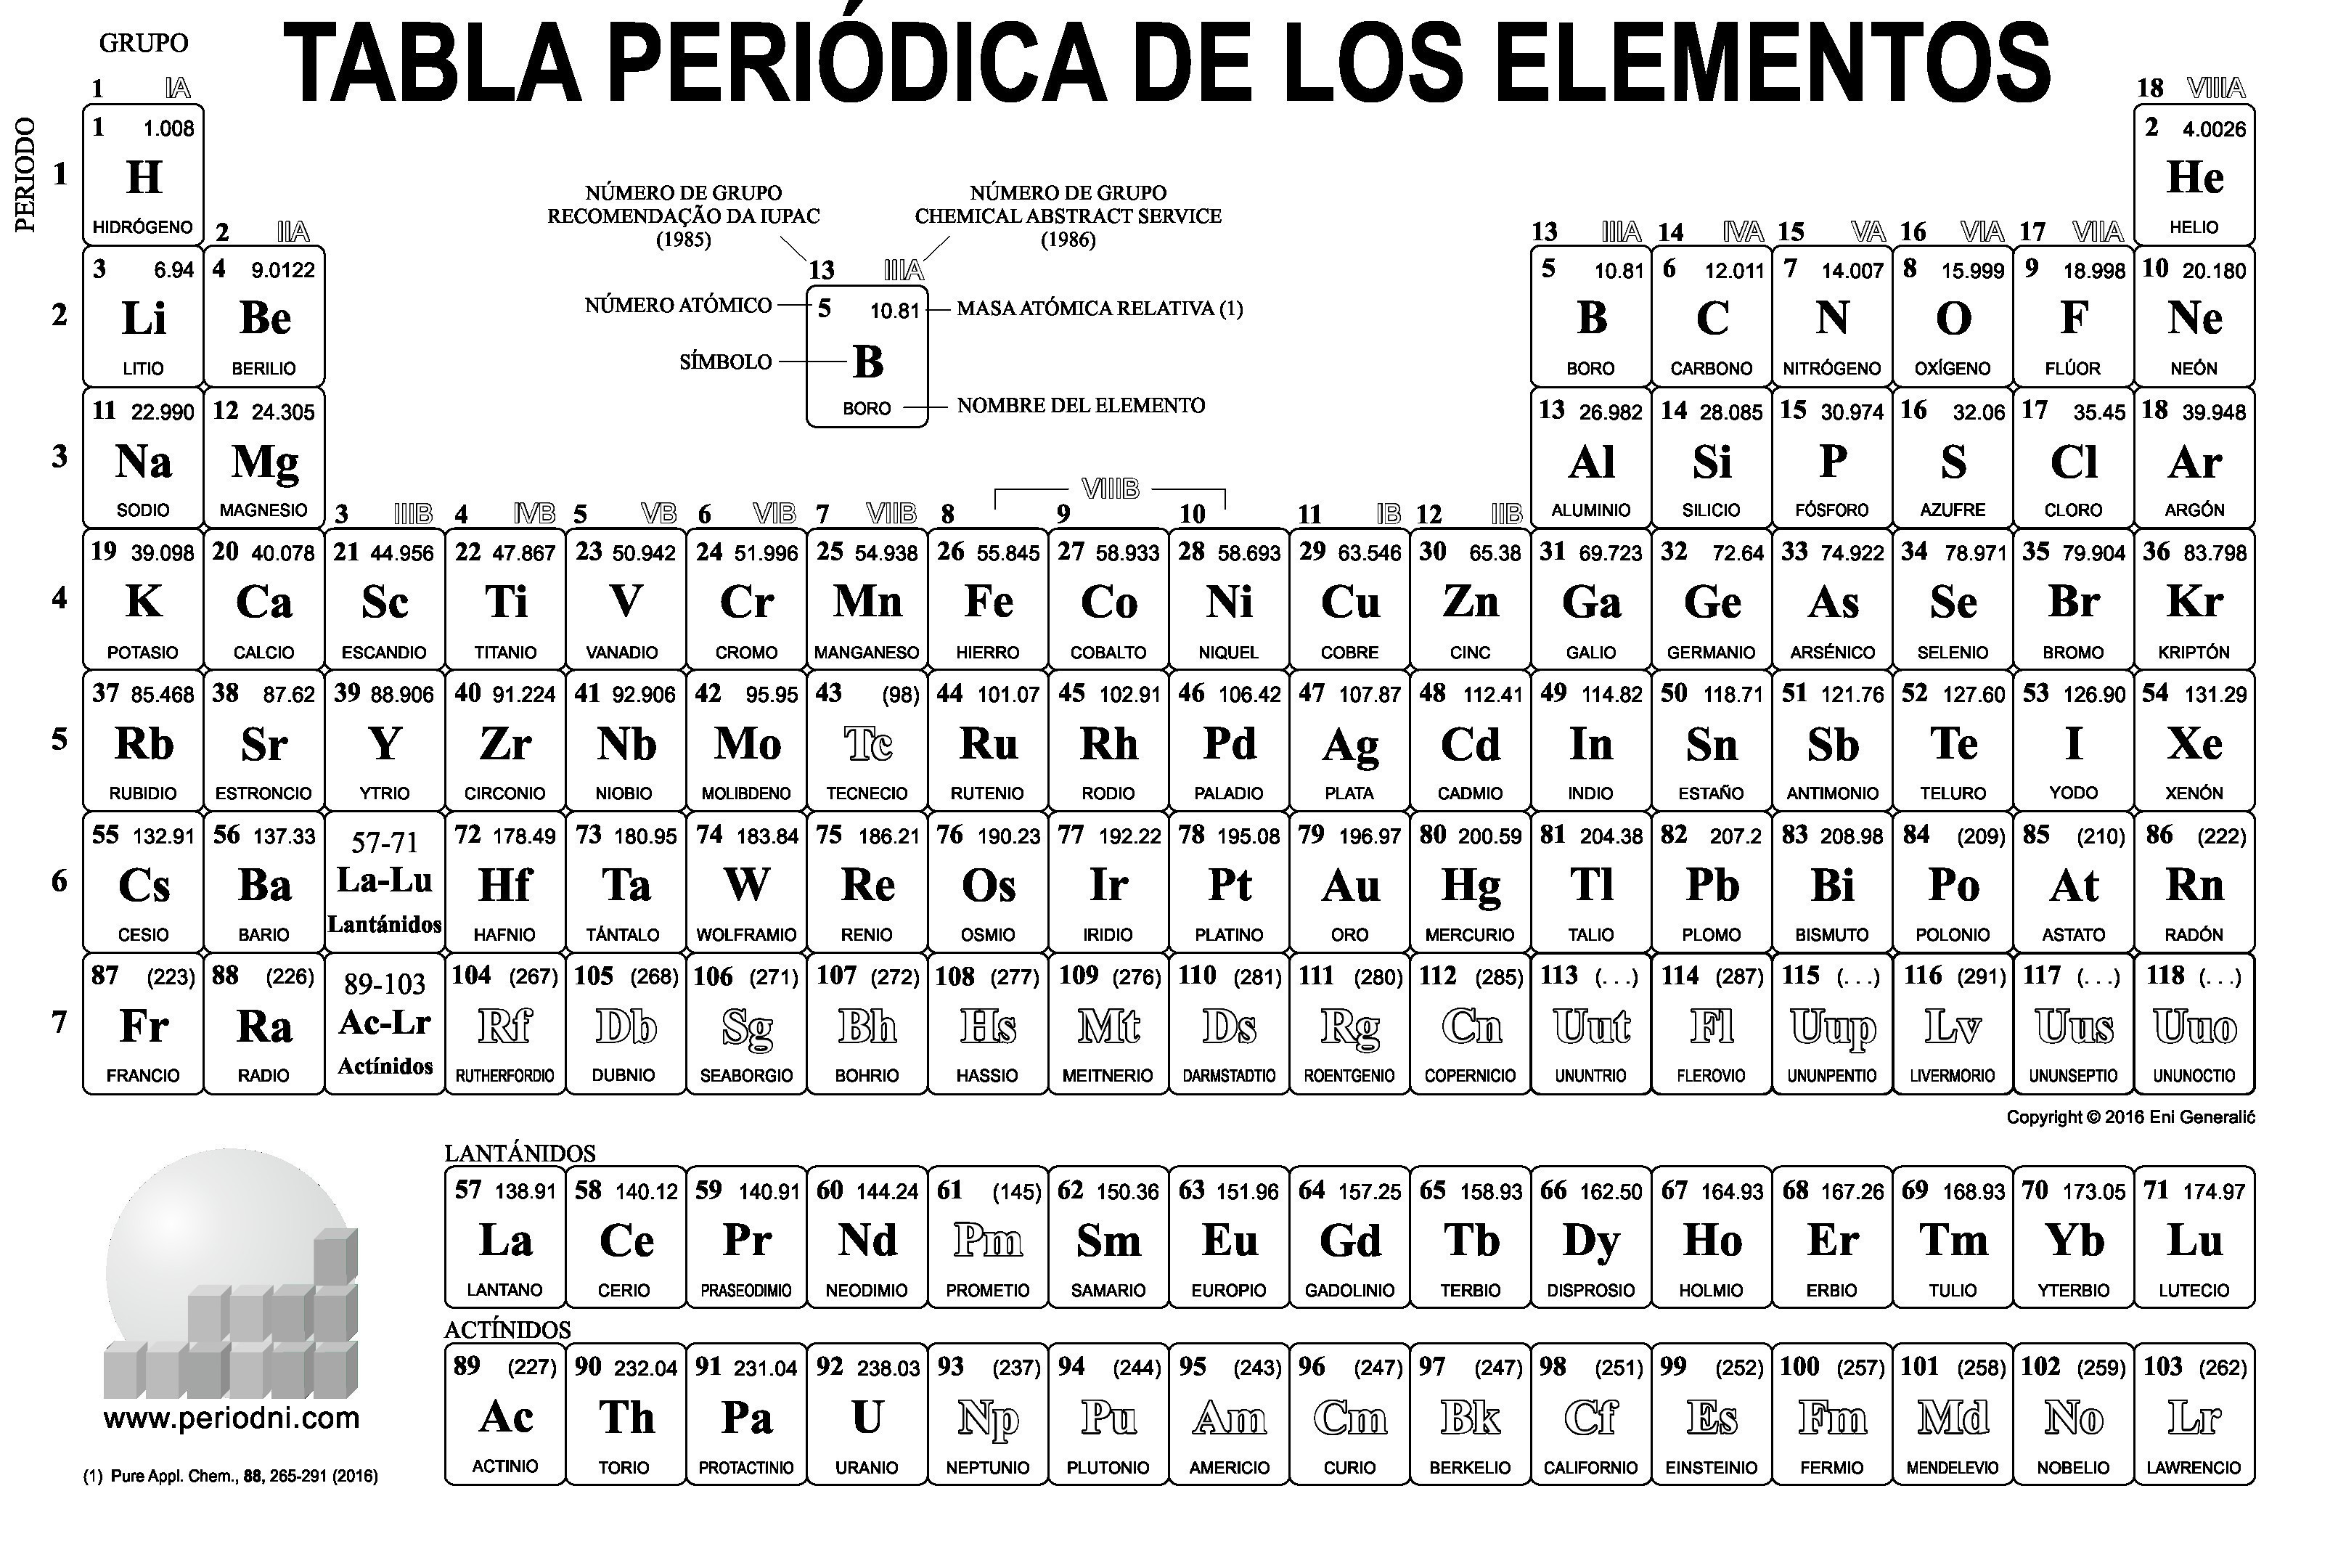 best imagenes de la tabla periodica en blanco image collection jpg 3221x2160 grande tabla periodica en